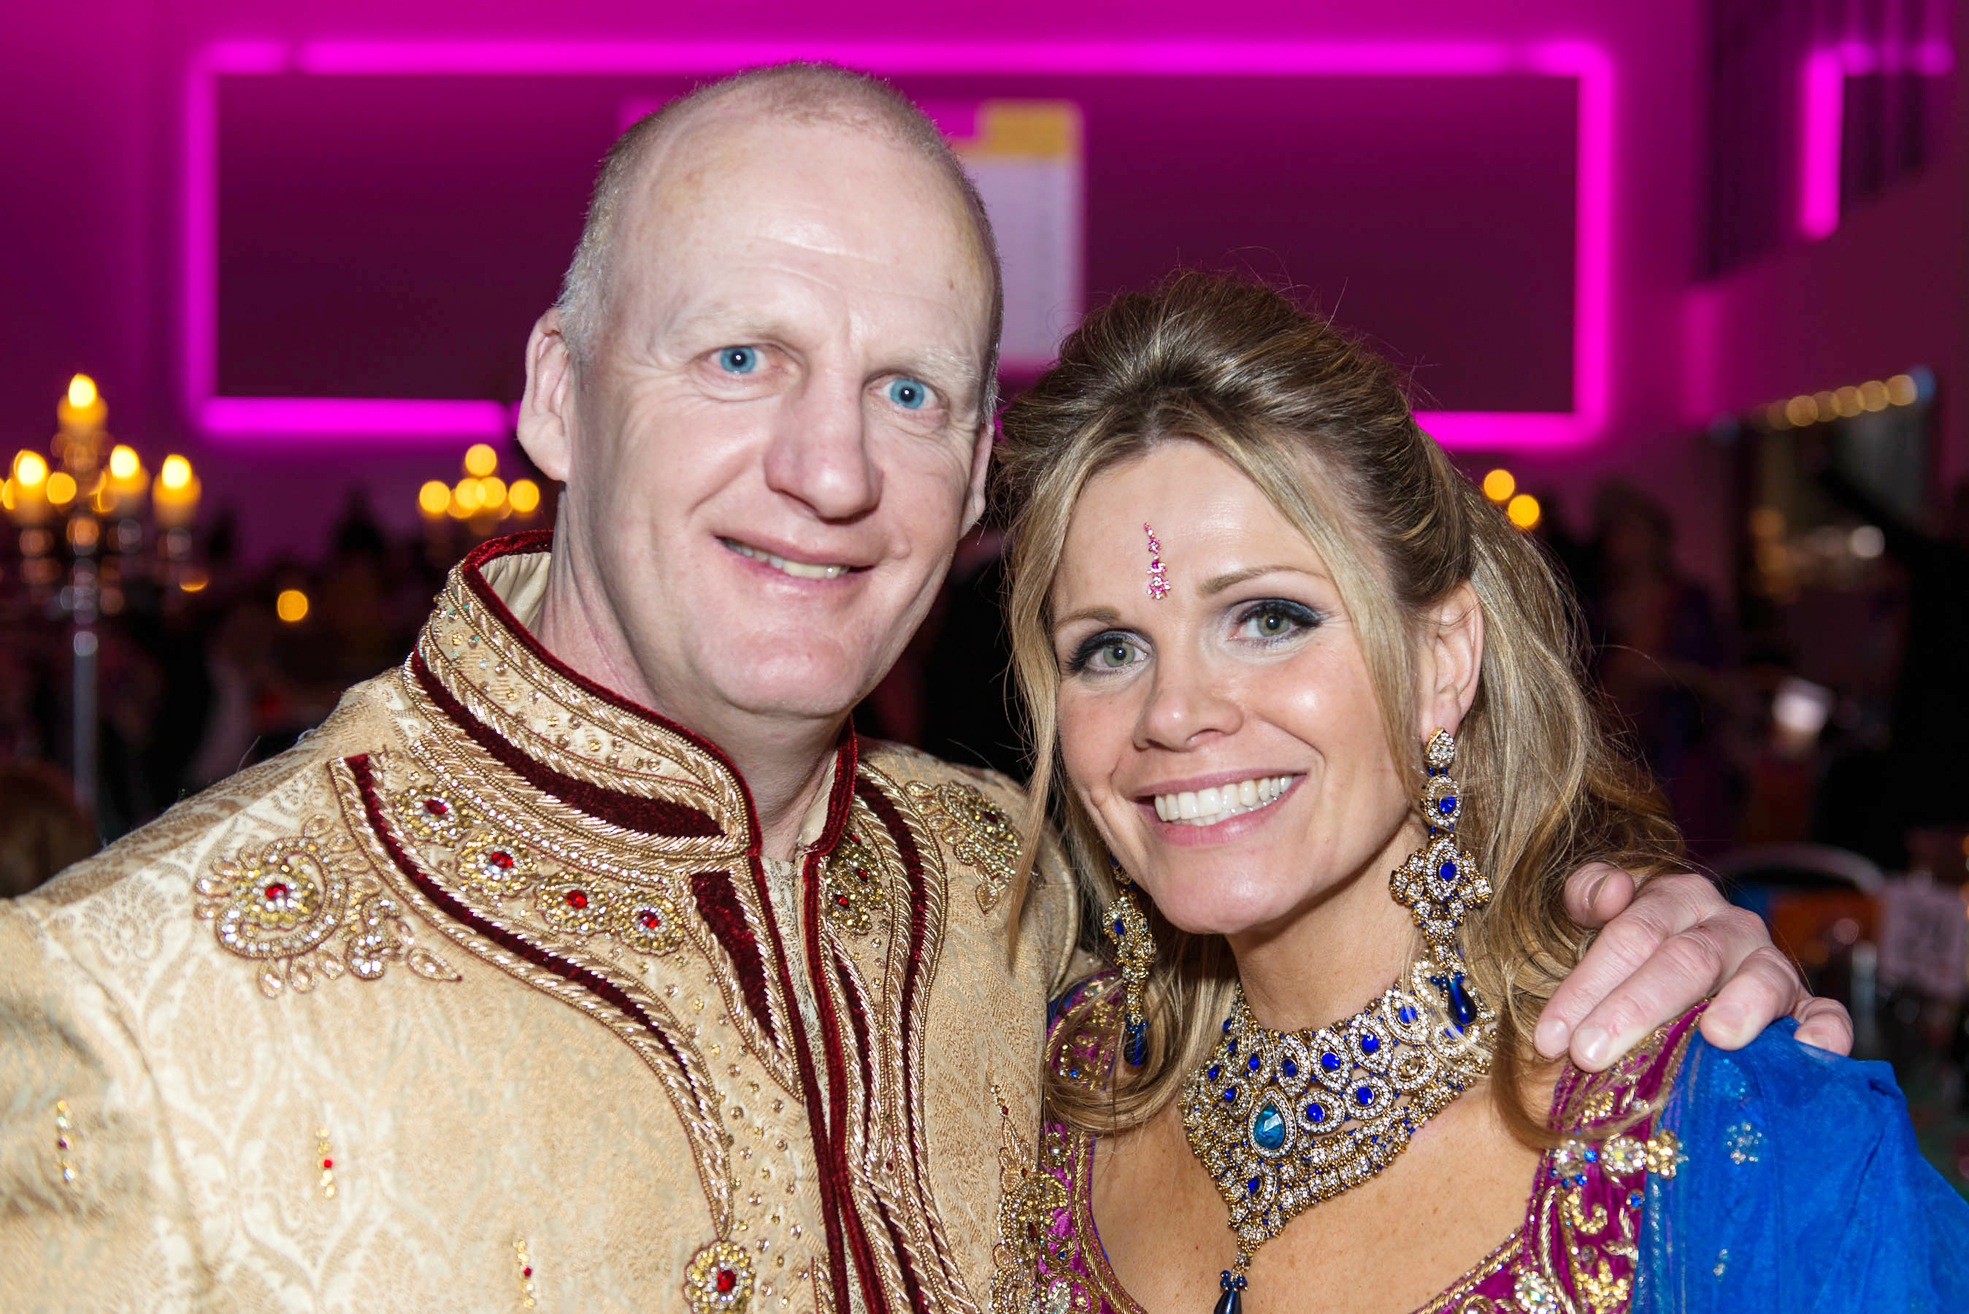 Iain and Debbie Dowie sign up for Great Manchester Run